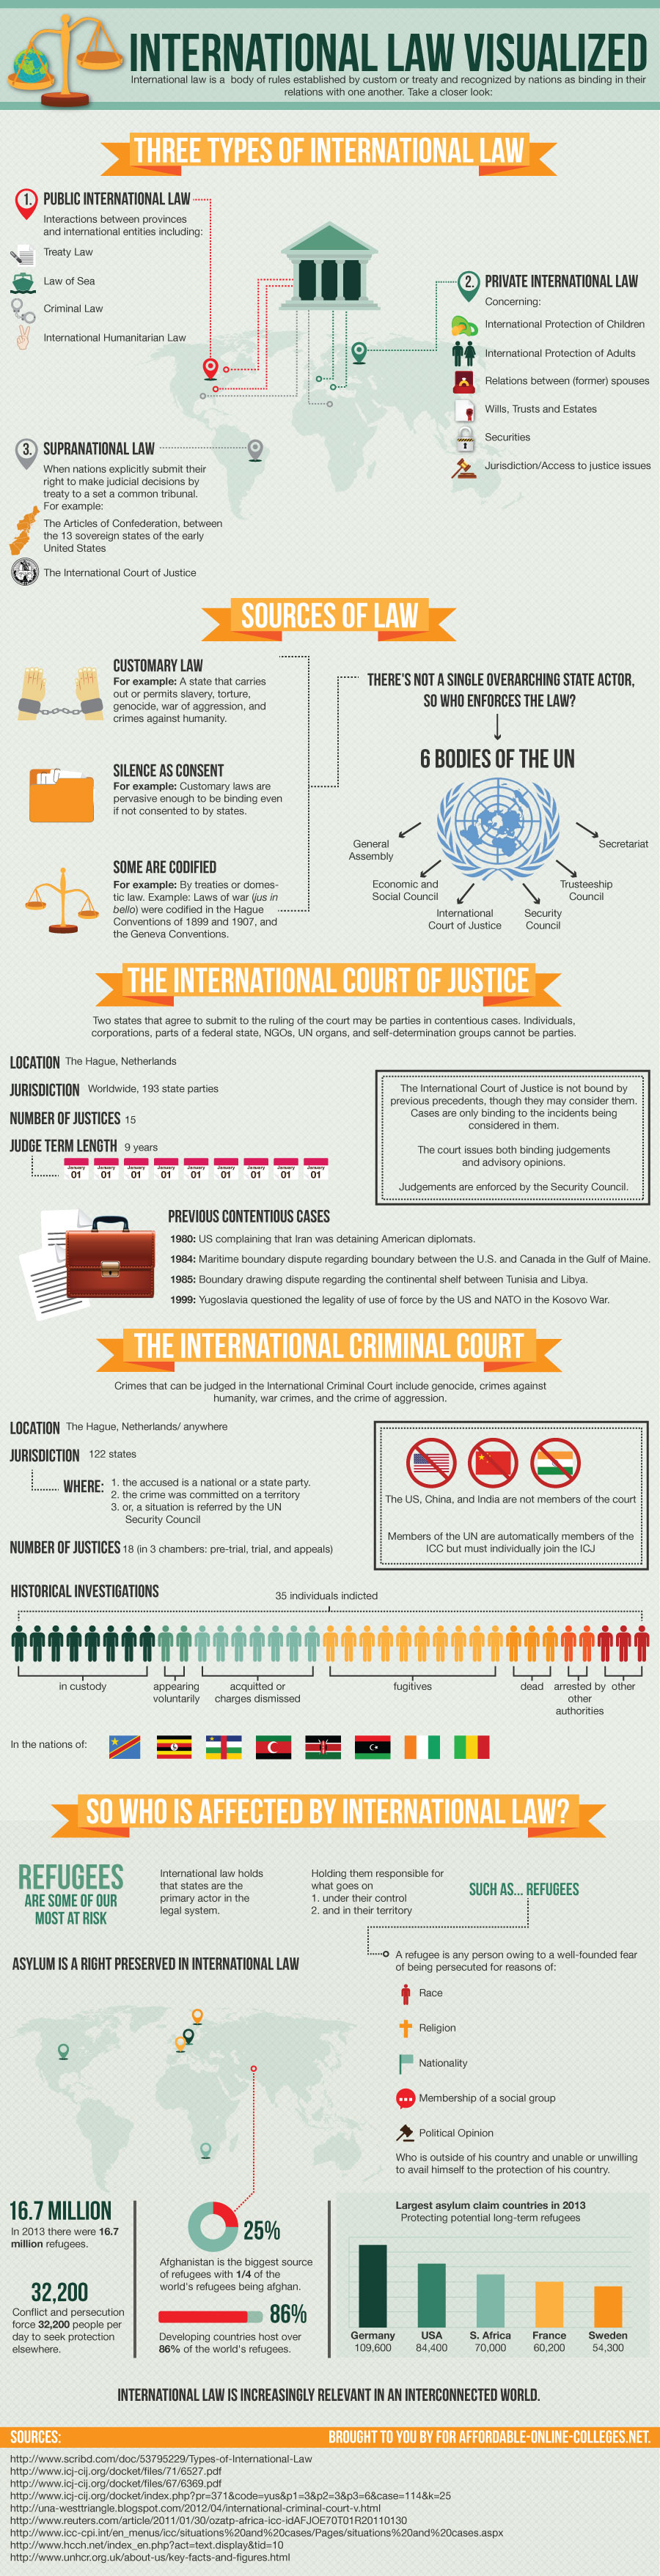 customary international law essay Customary international law, it is normally acknowledged, owes its starting place in trust professionals we can help you with eu law essay and more others.